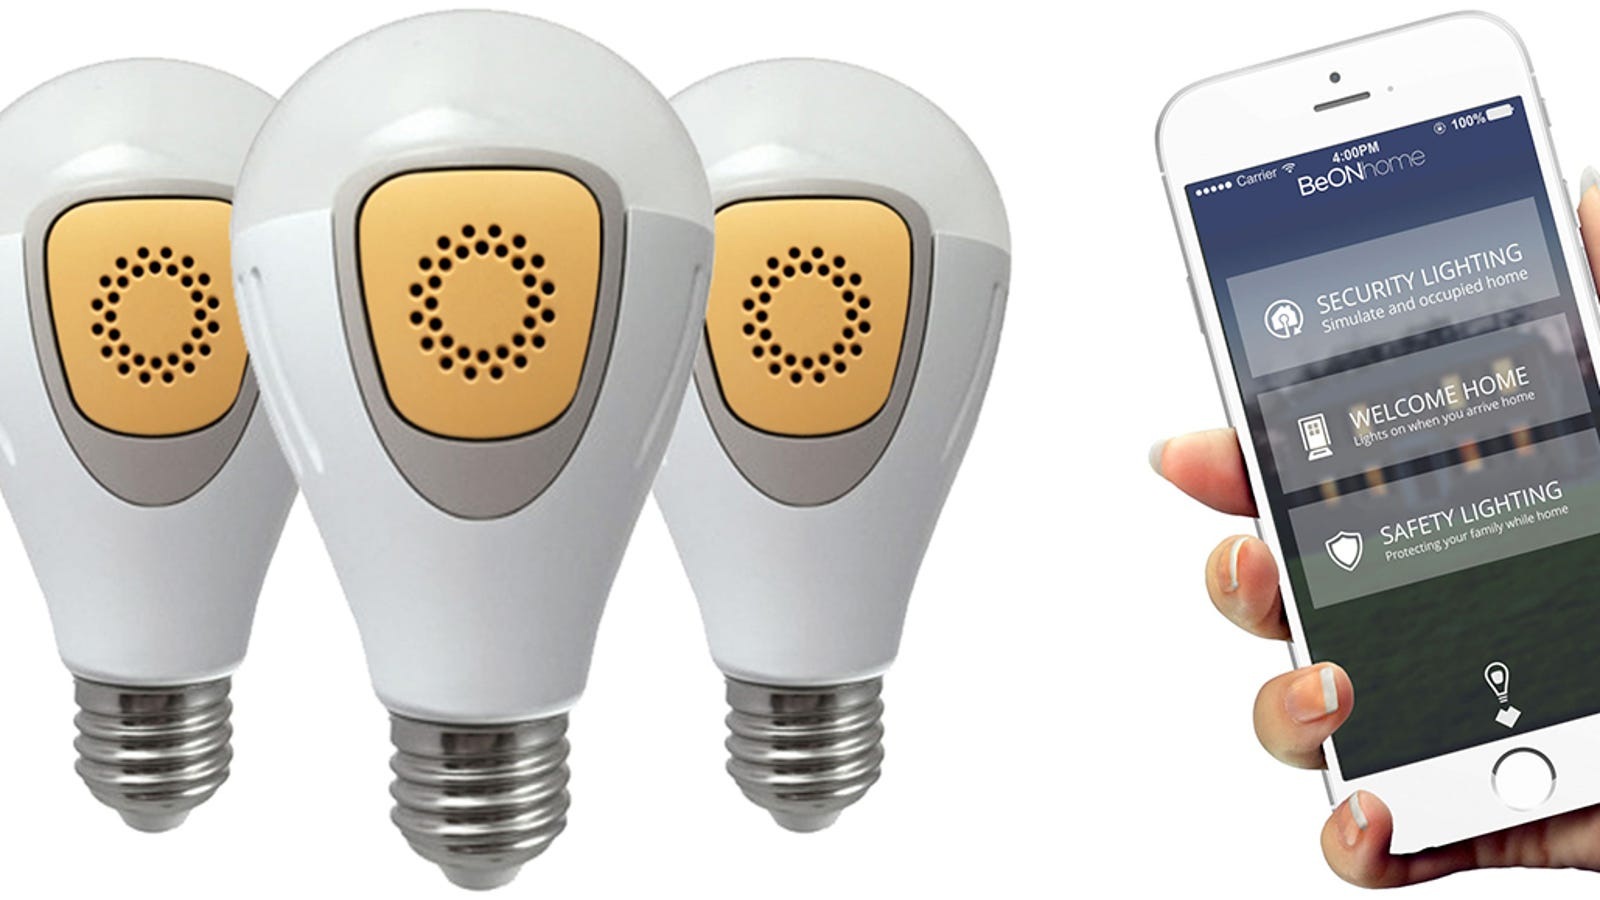 Smart LED Bulbs Learn Your Routines, and Automatically Turn On When ...